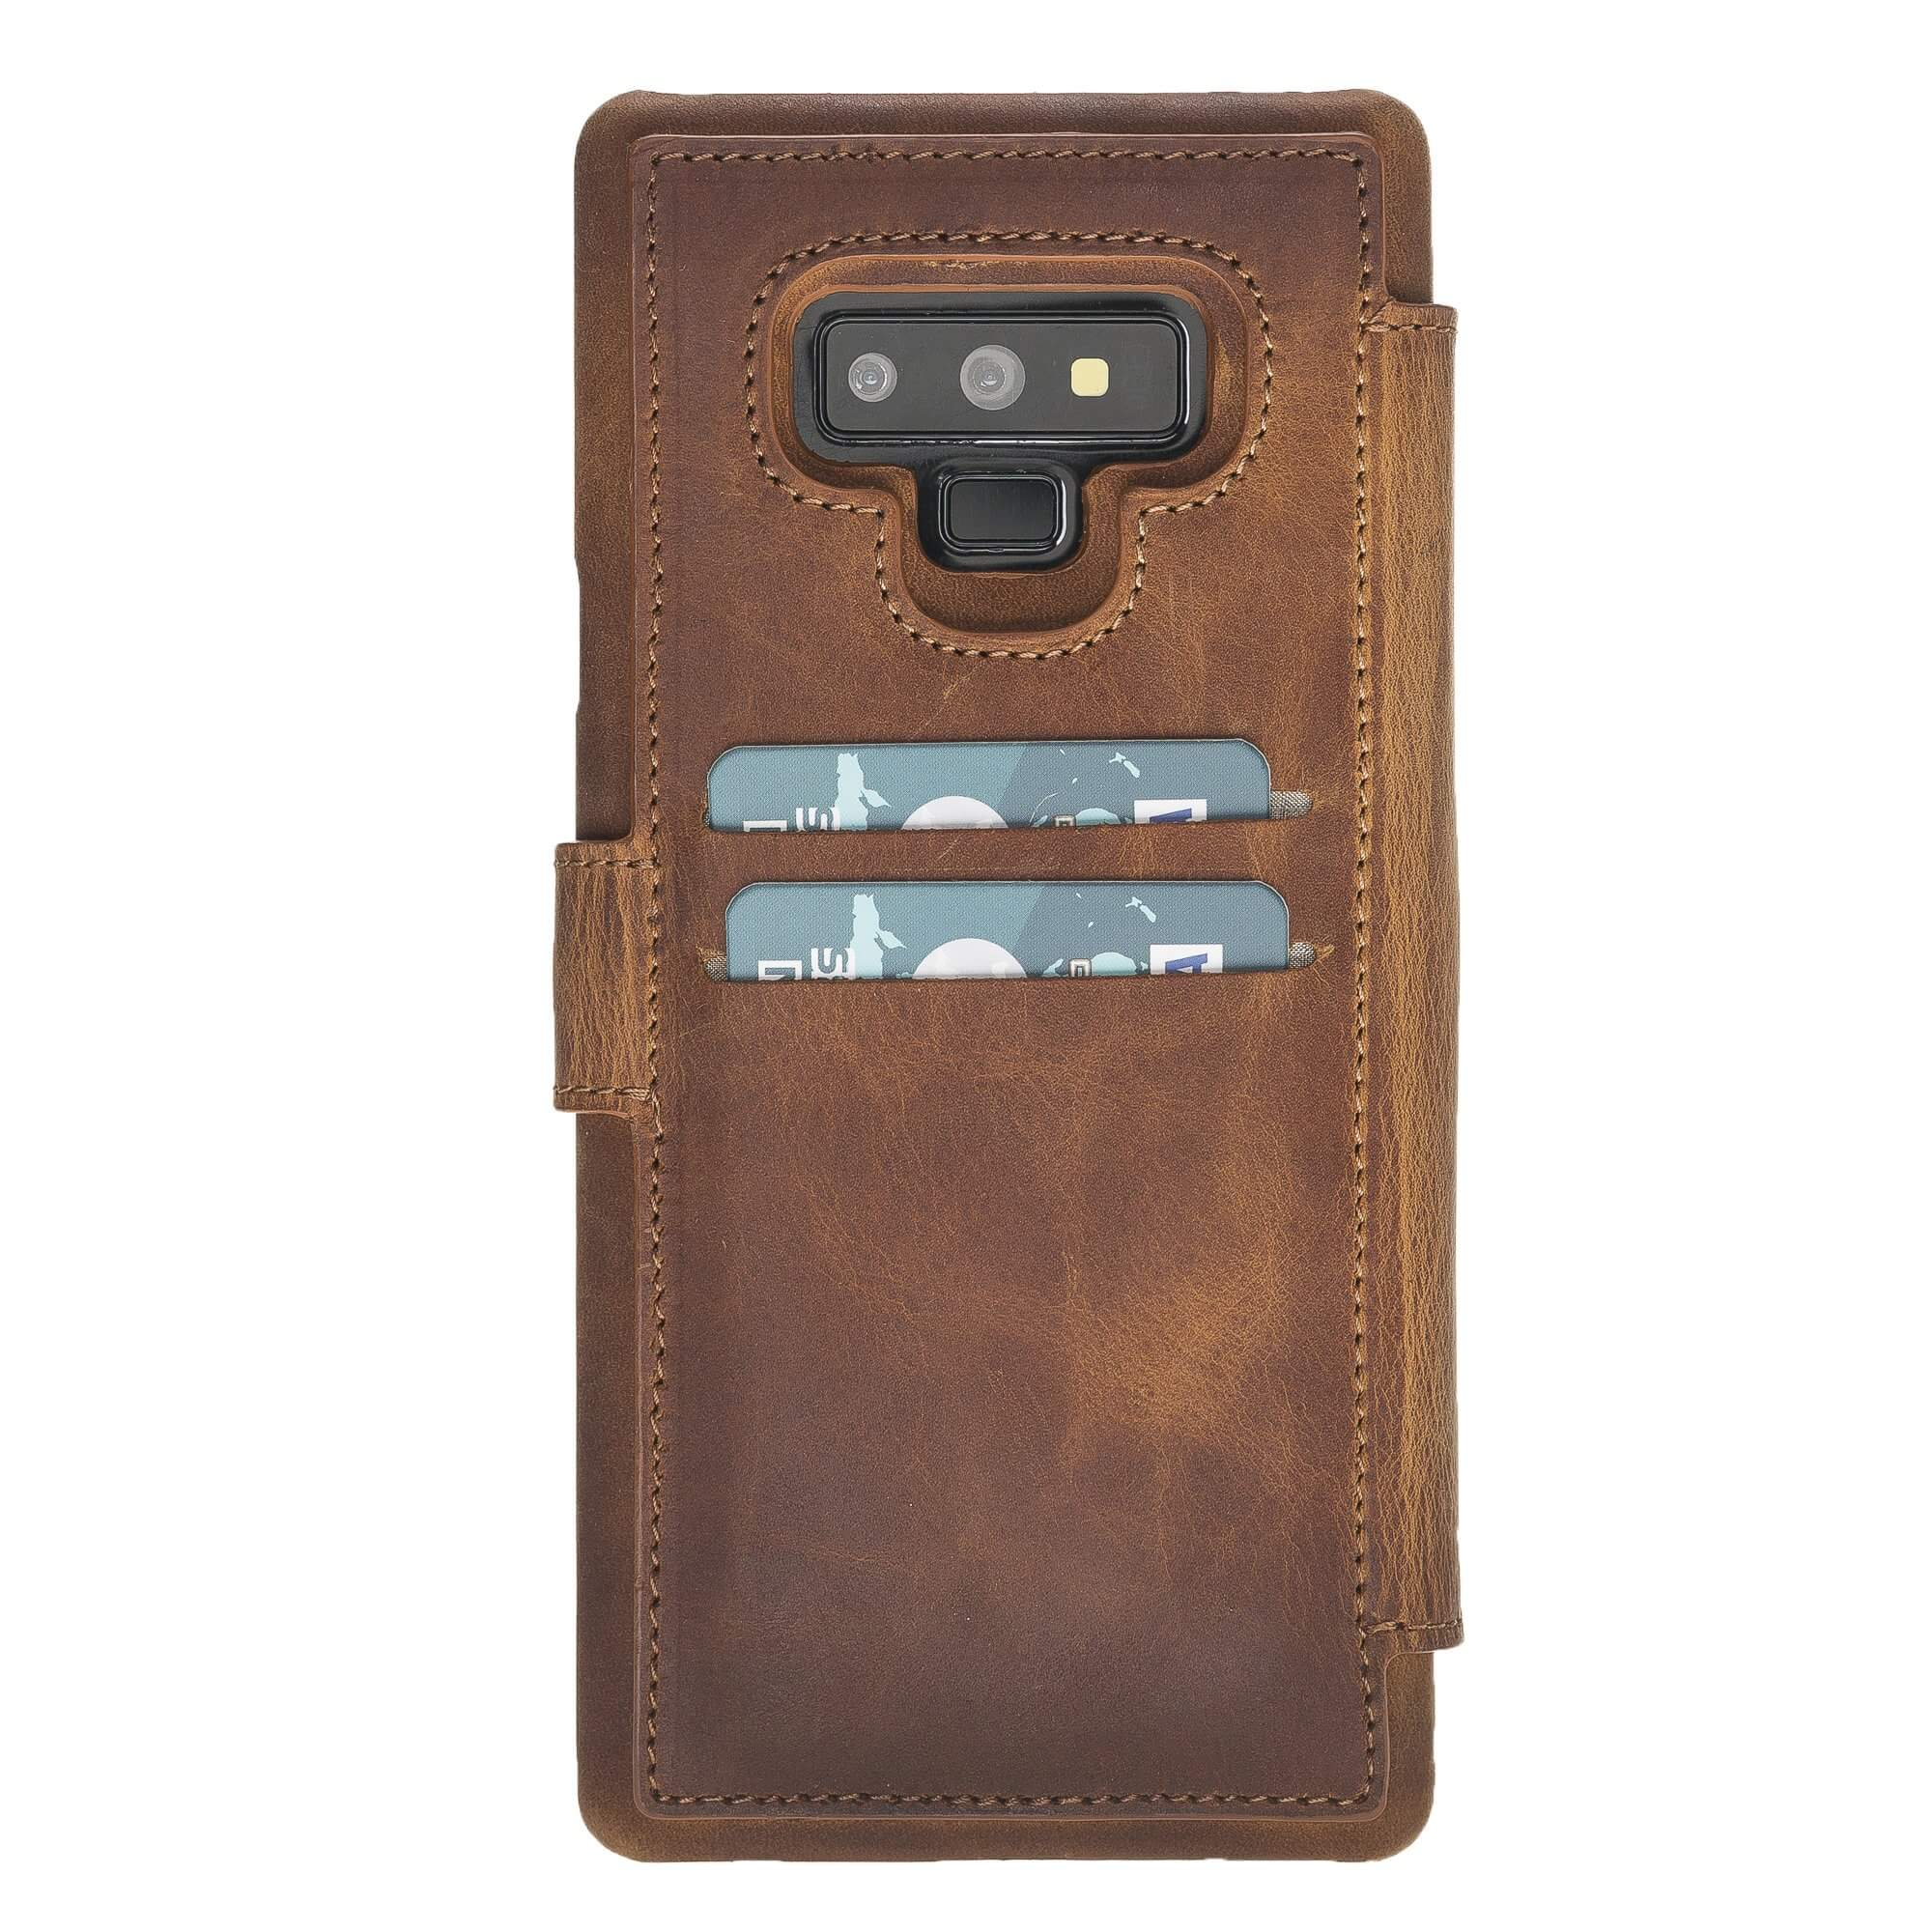 Siena RFID Blocking Leather Wallet Case for Samsung Galaxy Note 9